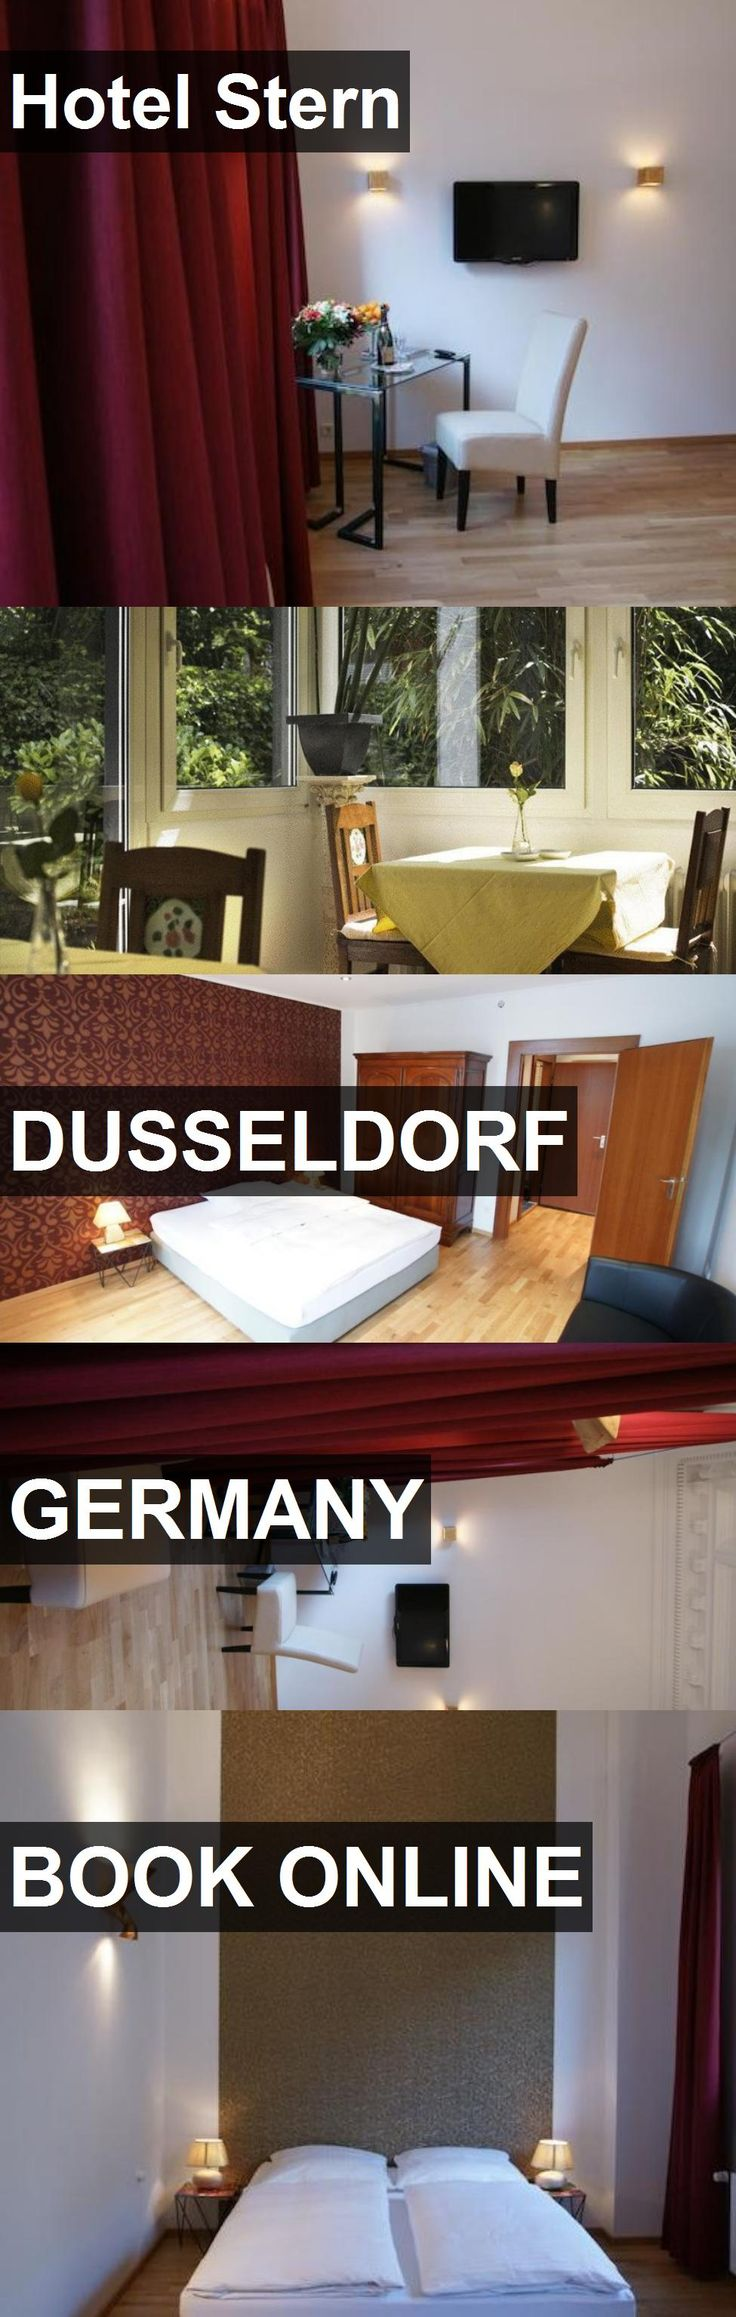 Hotel Stern in Dusseldorf, Germany. For more information, photos, reviews and best prices please follow the link. #Germany #Dusseldorf #travel #vacation #hotel